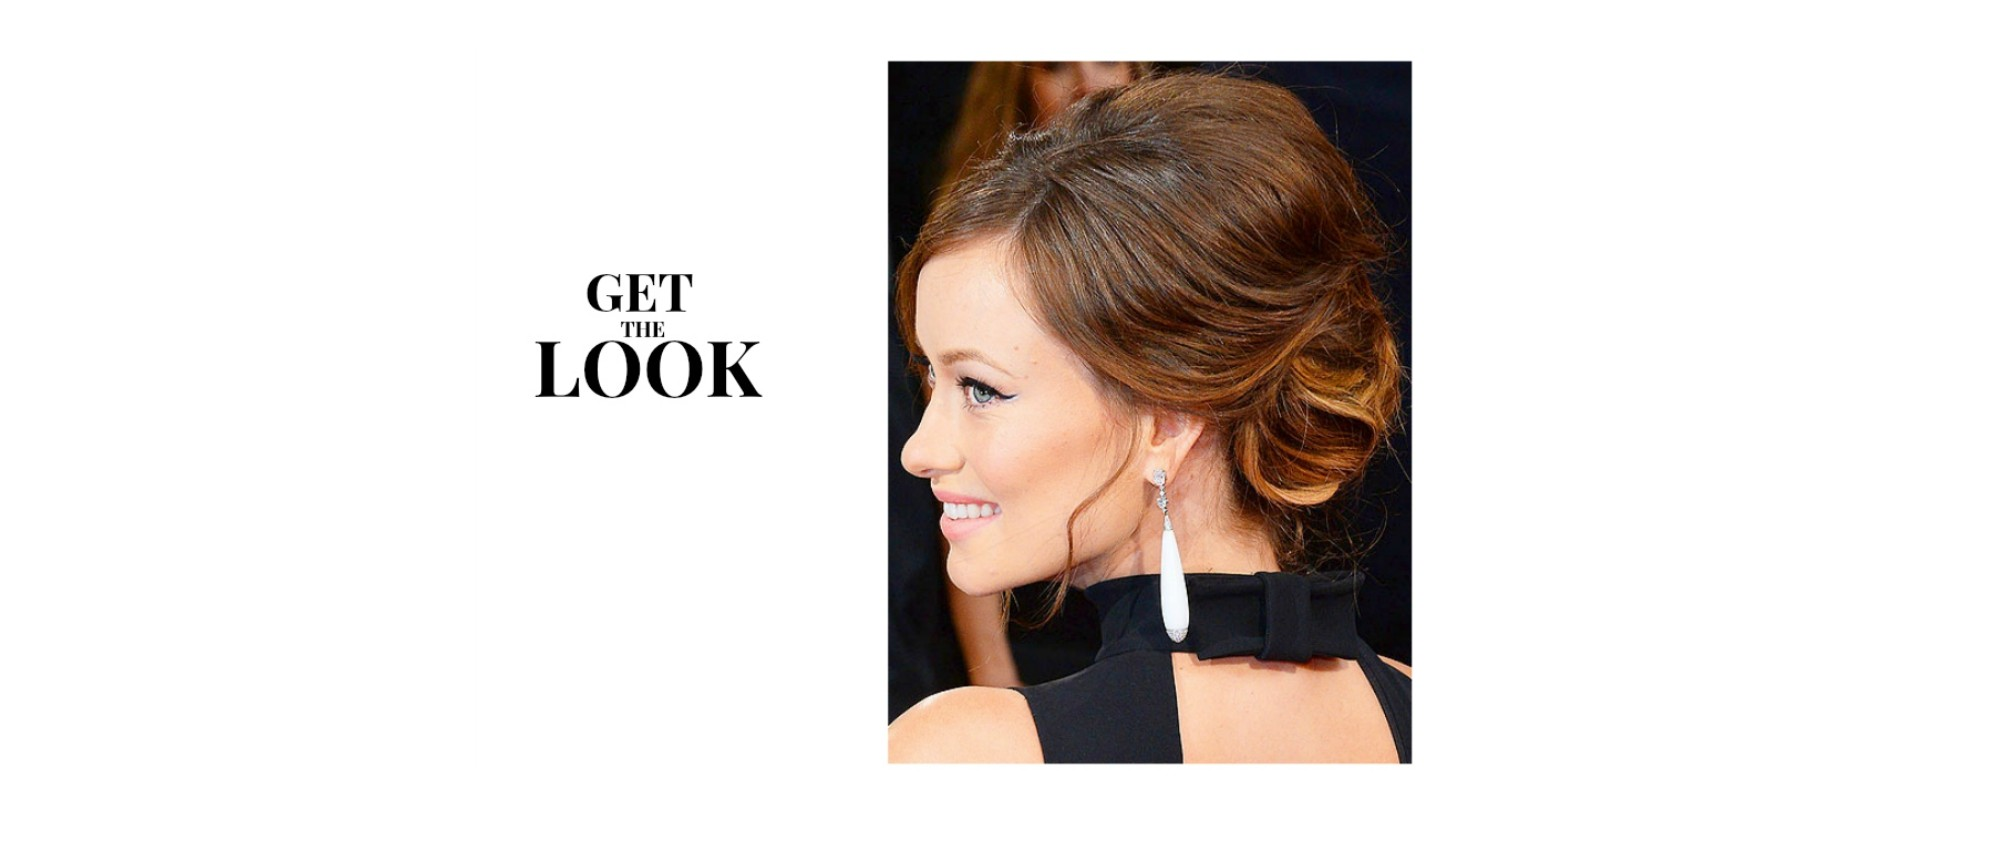 Best Hair: Get The Look